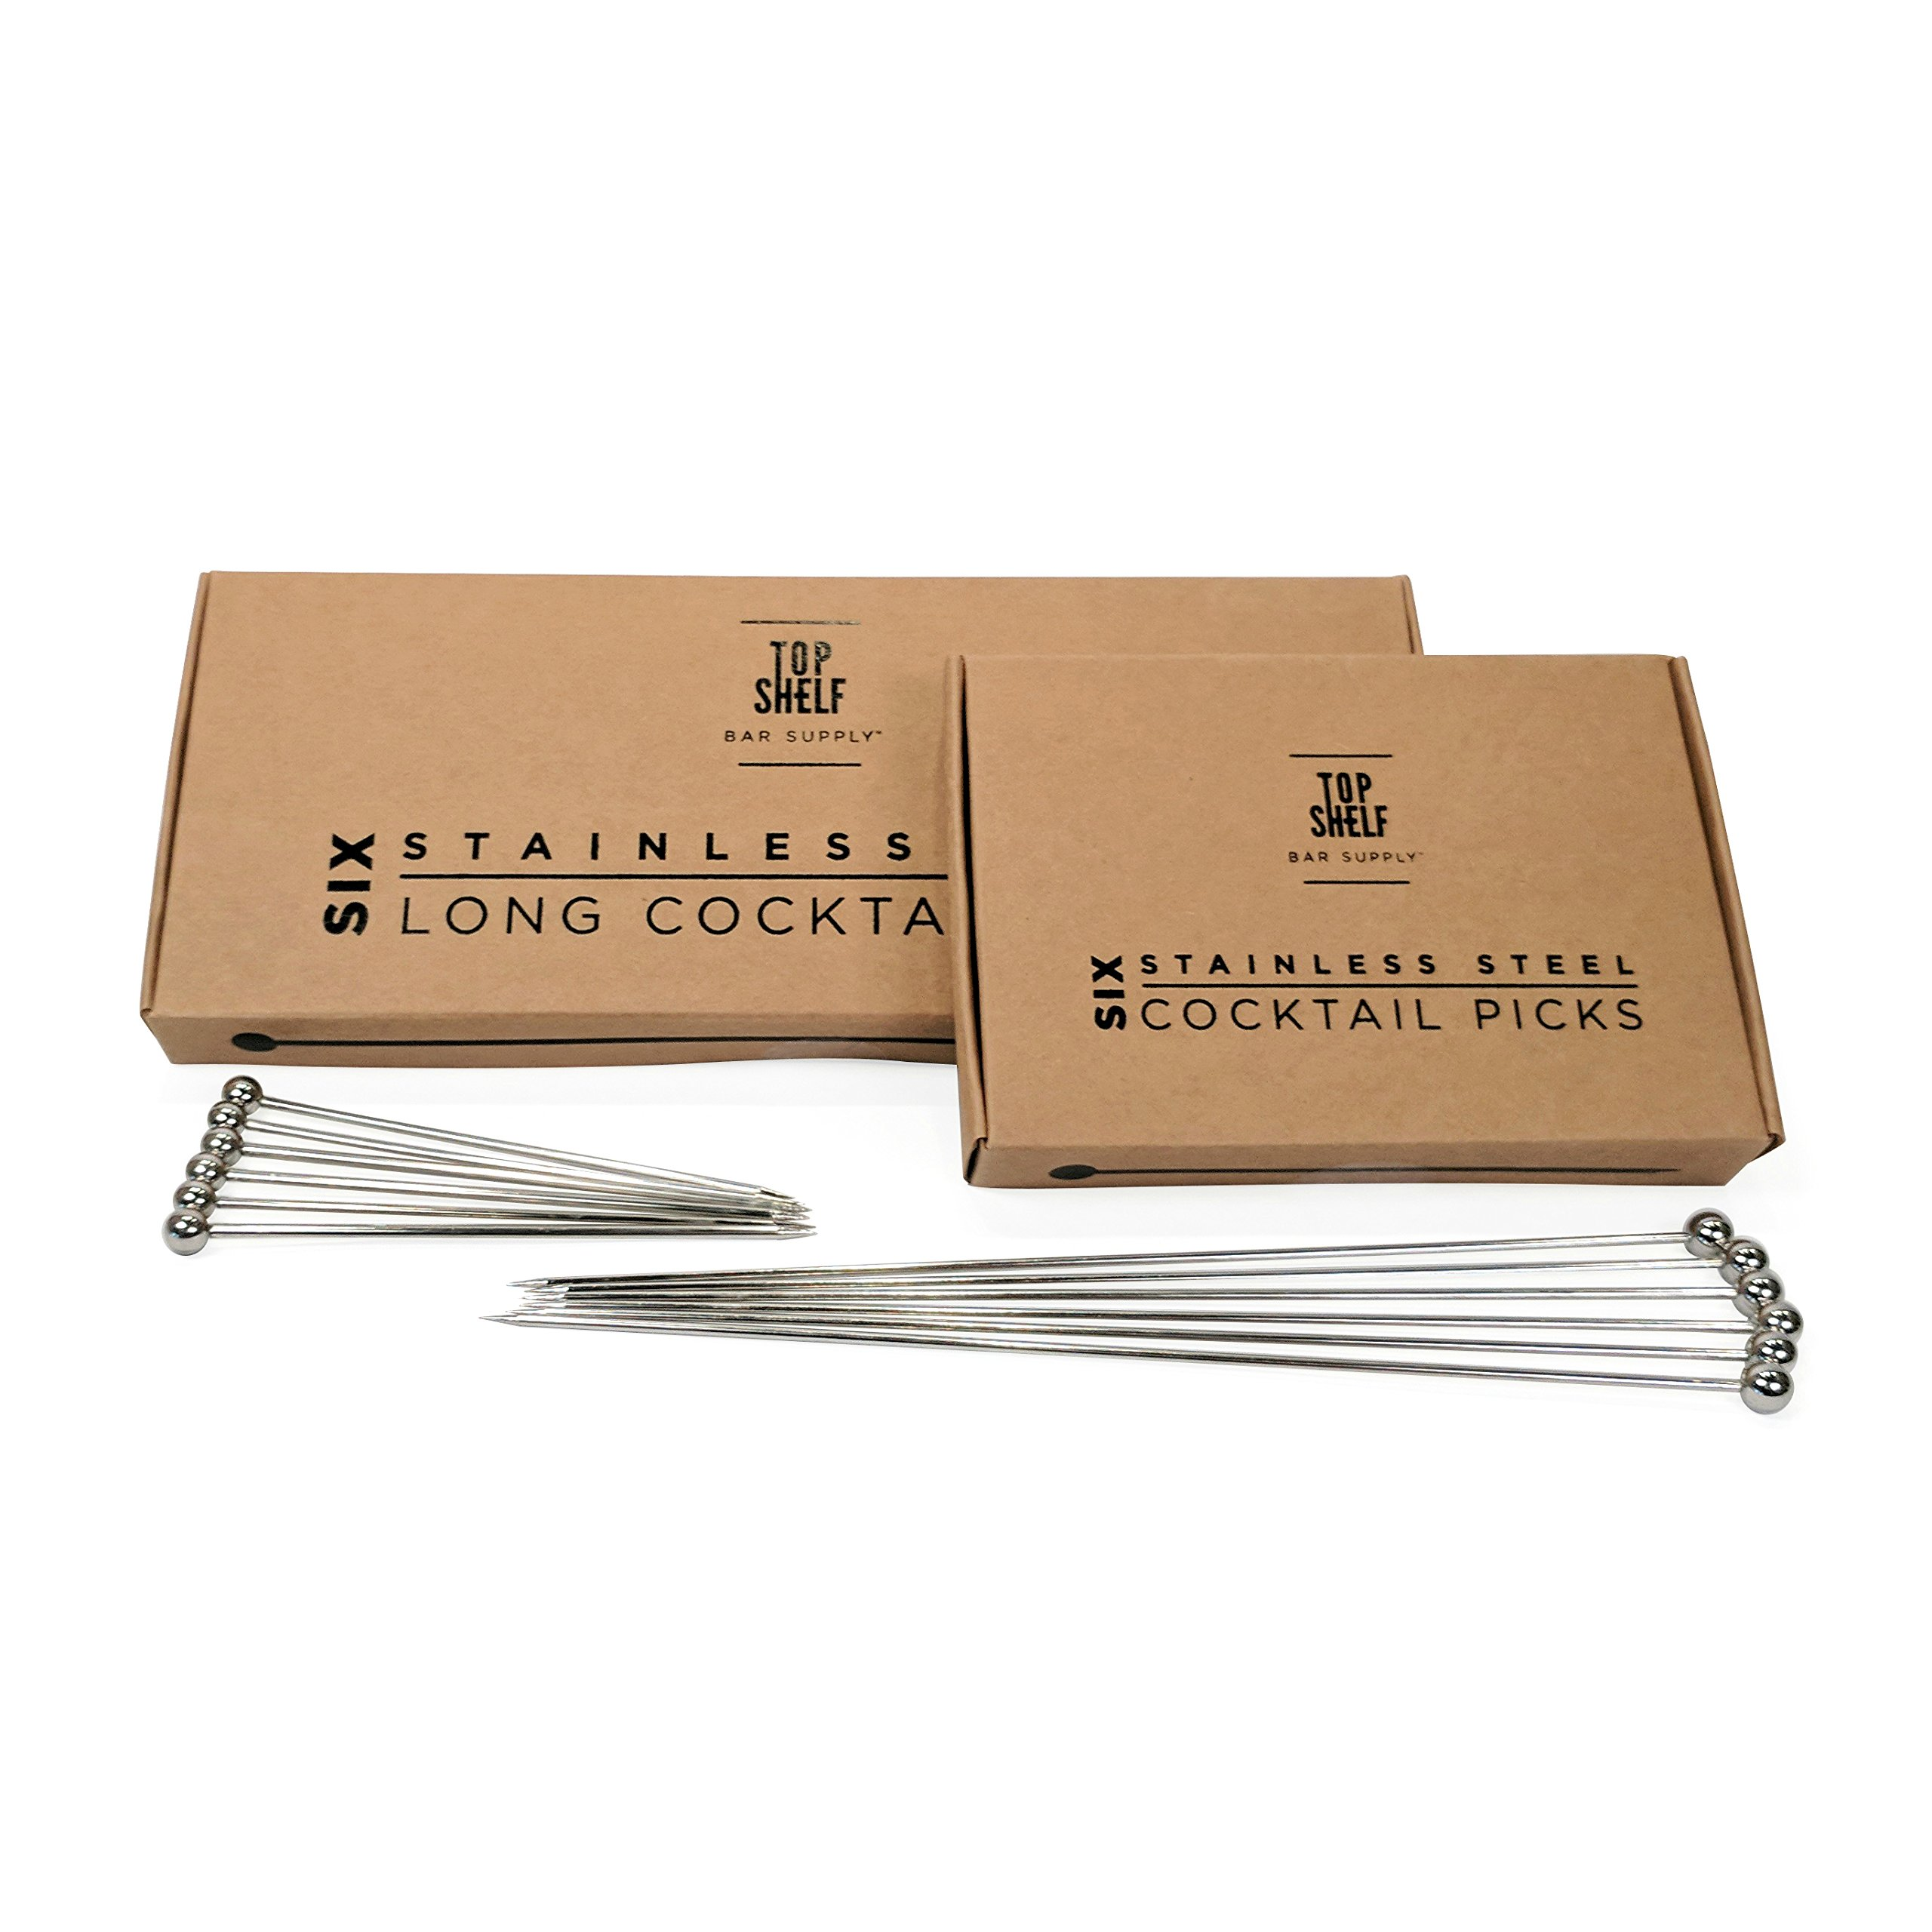 Stainless Steel Cocktail Picks Combo Pack - (6pc of each 4'' and 8'' picks)